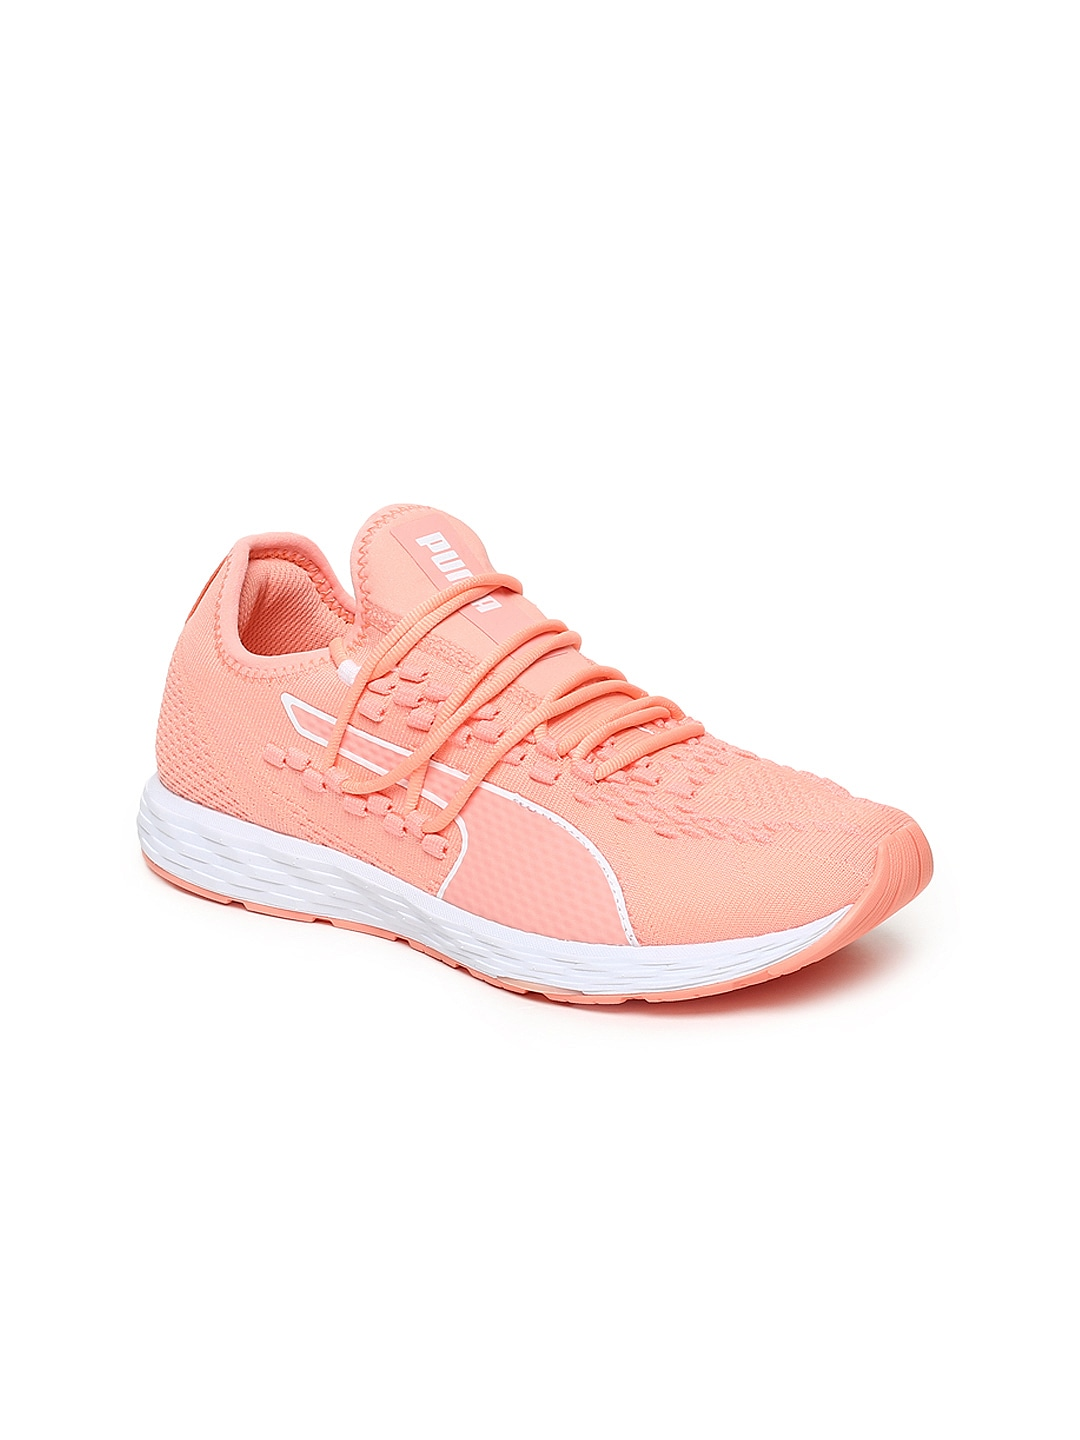 caf199fa9e06 Puma Women Shoes - Buy Puma Women Shoes online in India